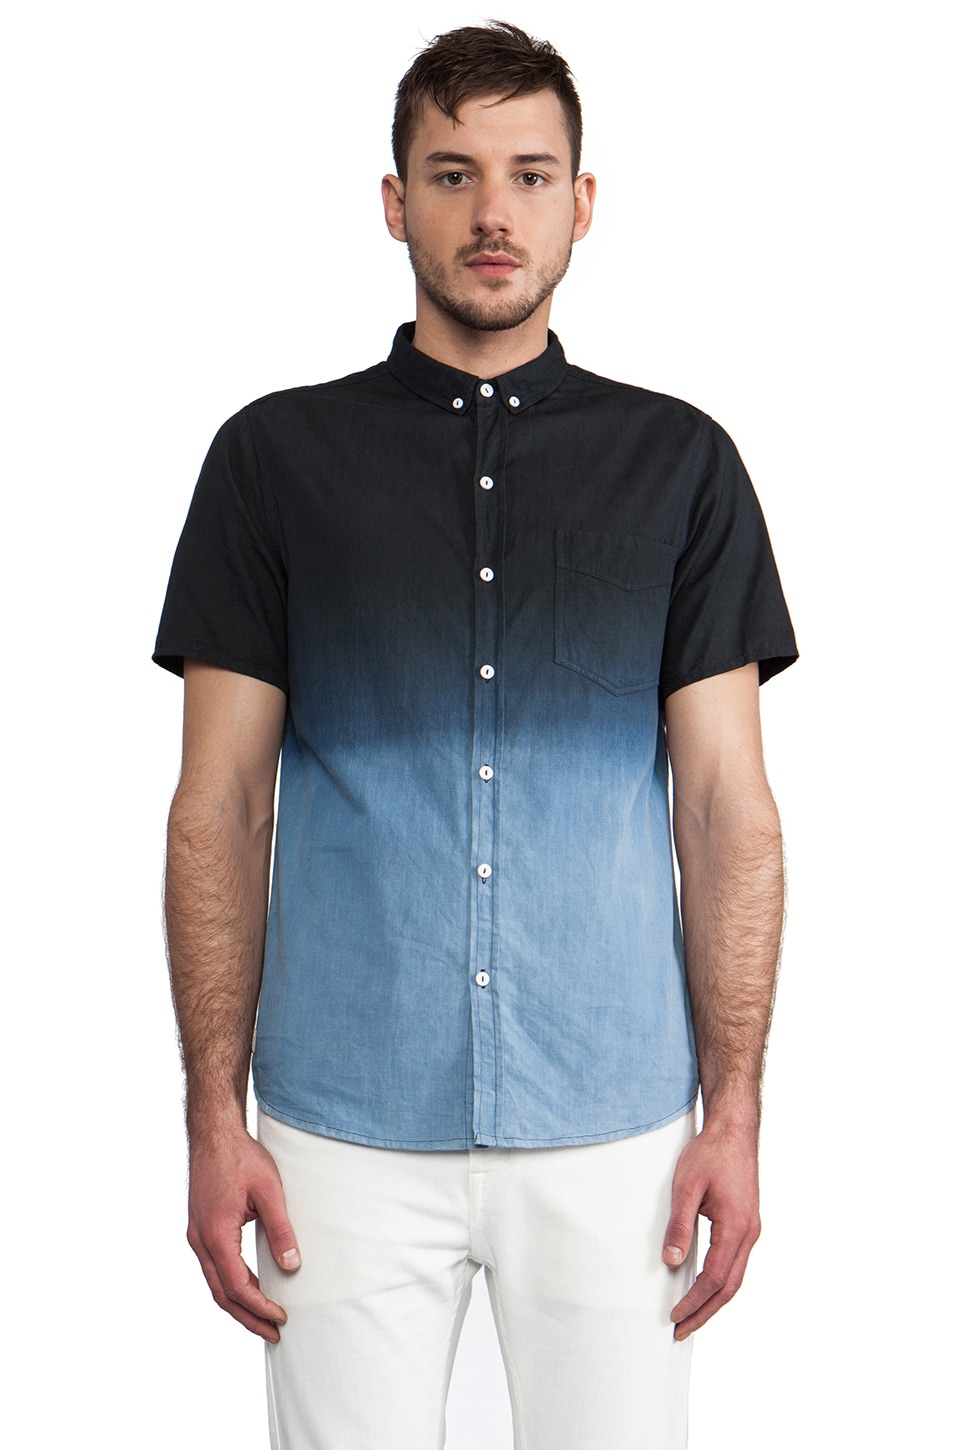 NEUW Ren Bleach Shirt in Indigo